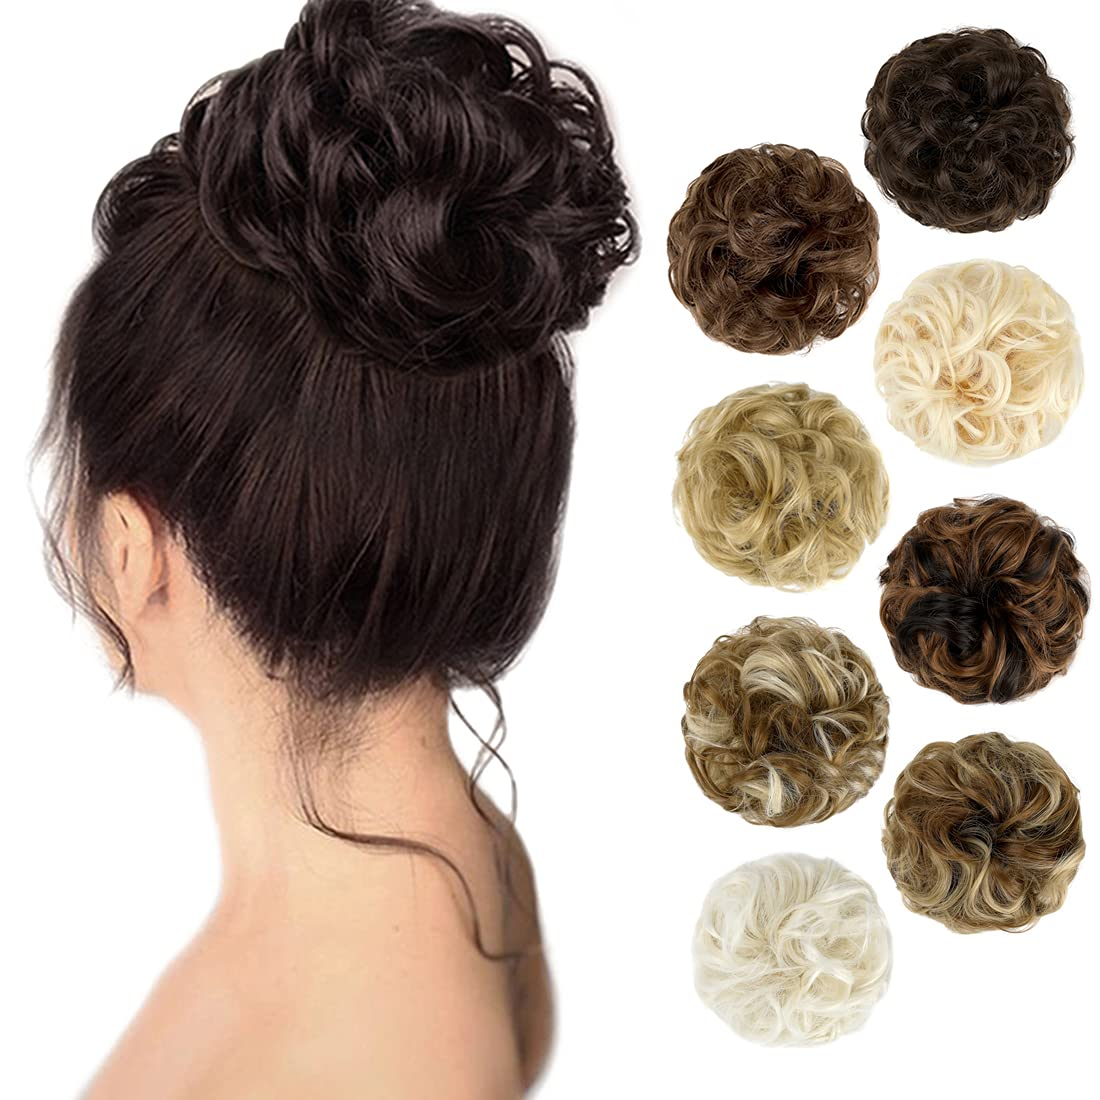 Messy Bun Product Hair Piece Complete Free Shipping Scrunchie Thick Wavy U Donut Curly Chignons